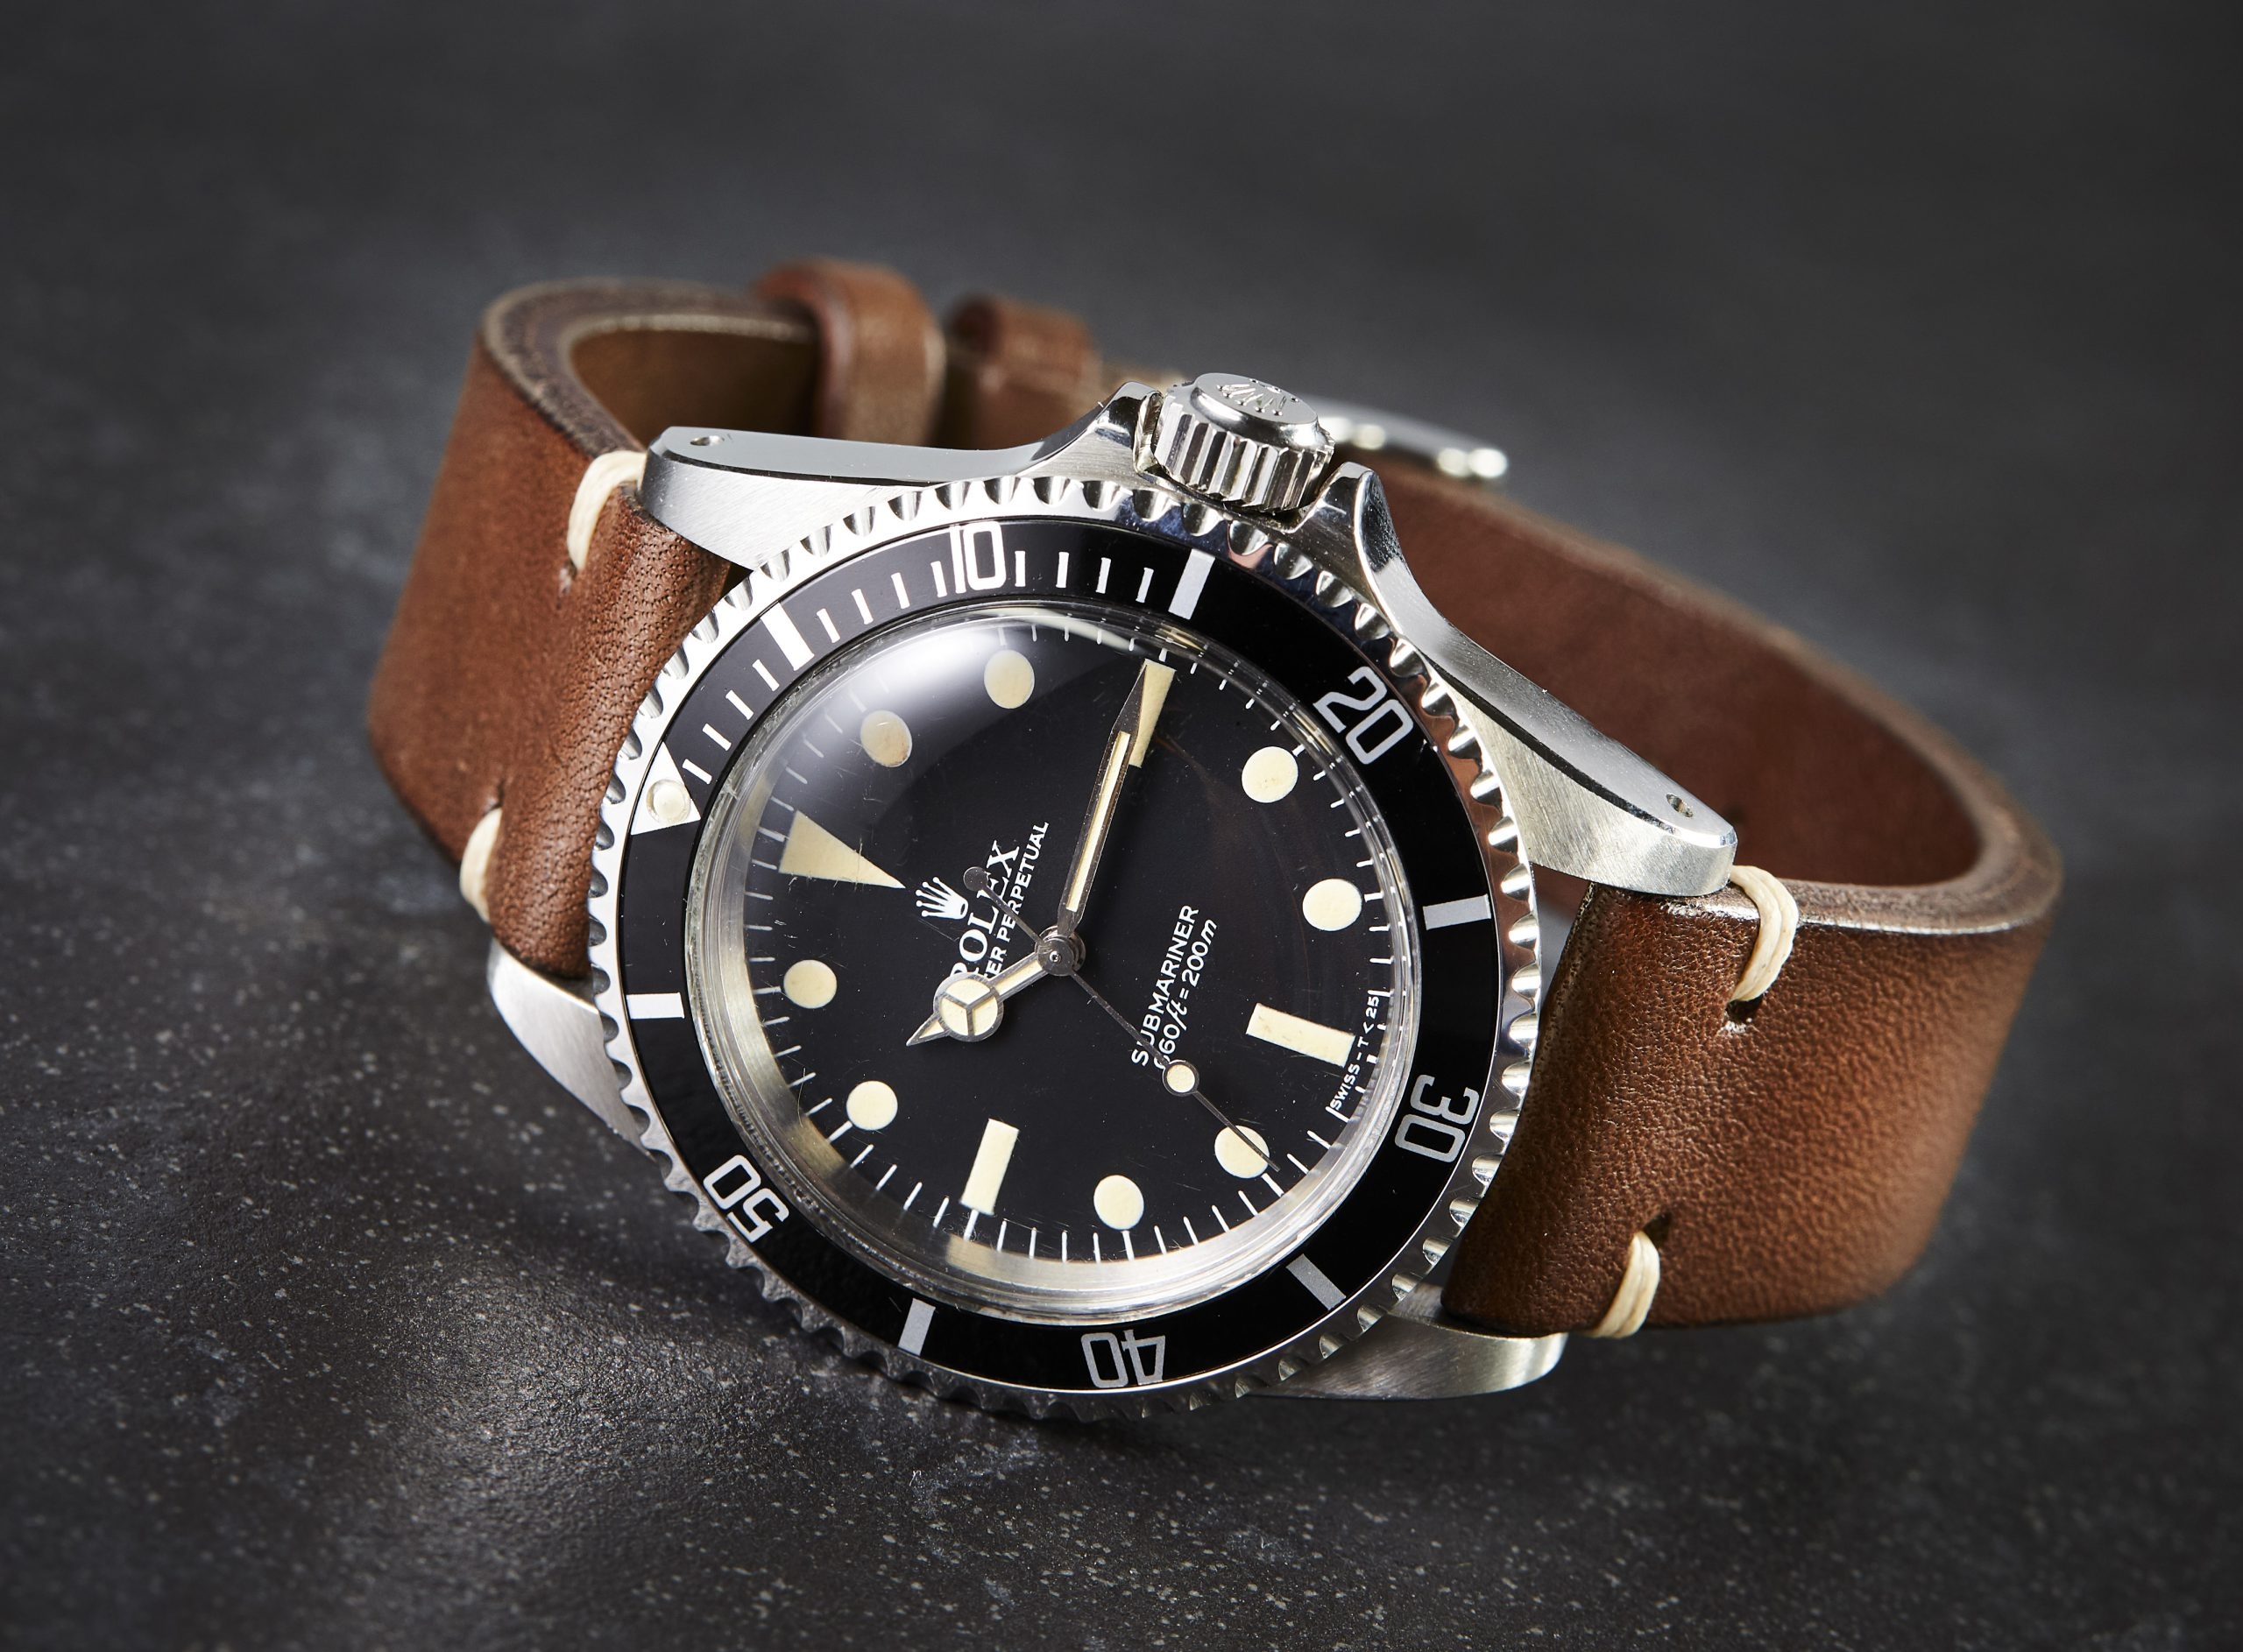 ANNOUNCING: The Time+Tide Shop, launching with the Ltd Edn Seiko Presage SPB069 'Moonlit Night', premium straps and more